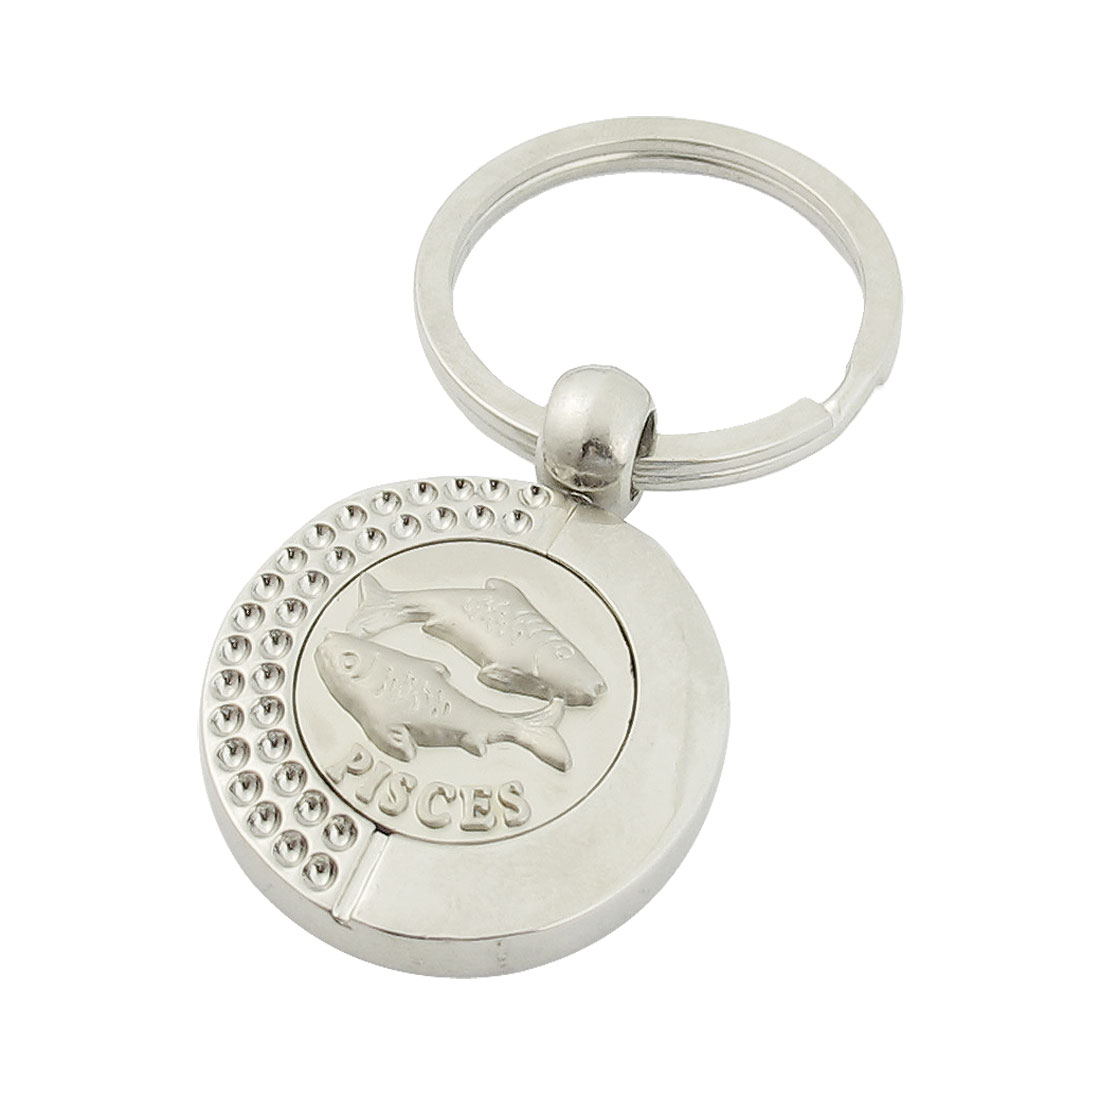 Pisces Relievo Round Dangling Pendant Keyring Keychain Silver Tone